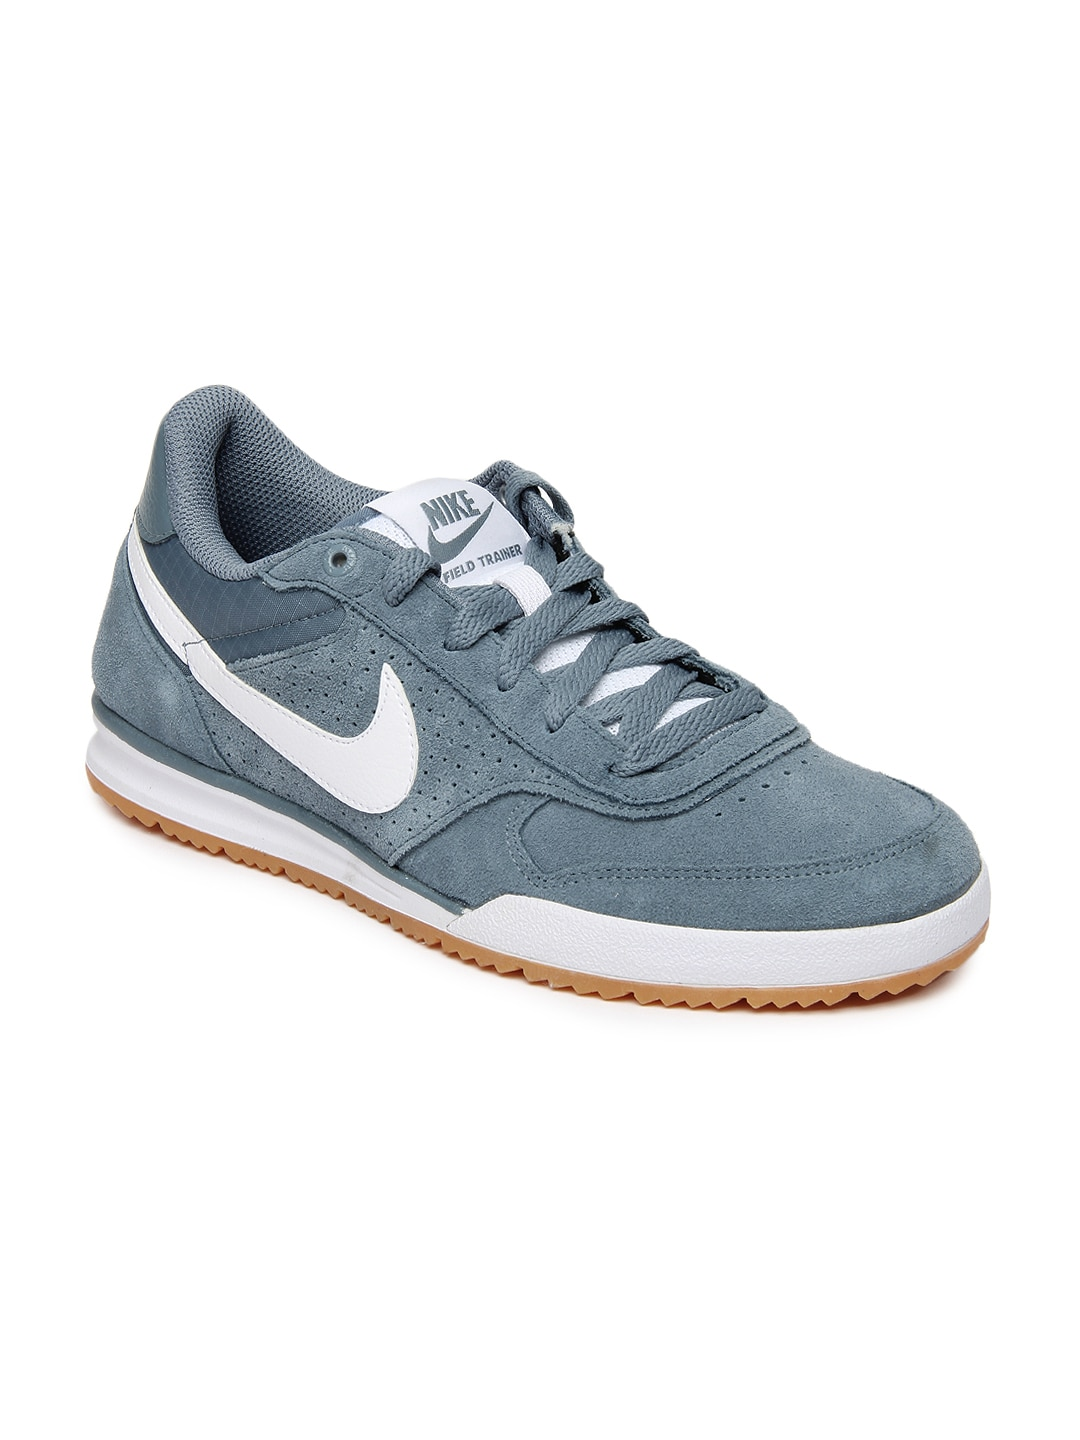 newest 7e1ad 1413f Nike 443918-419 Men Grey Field Training Shoes- Price in India